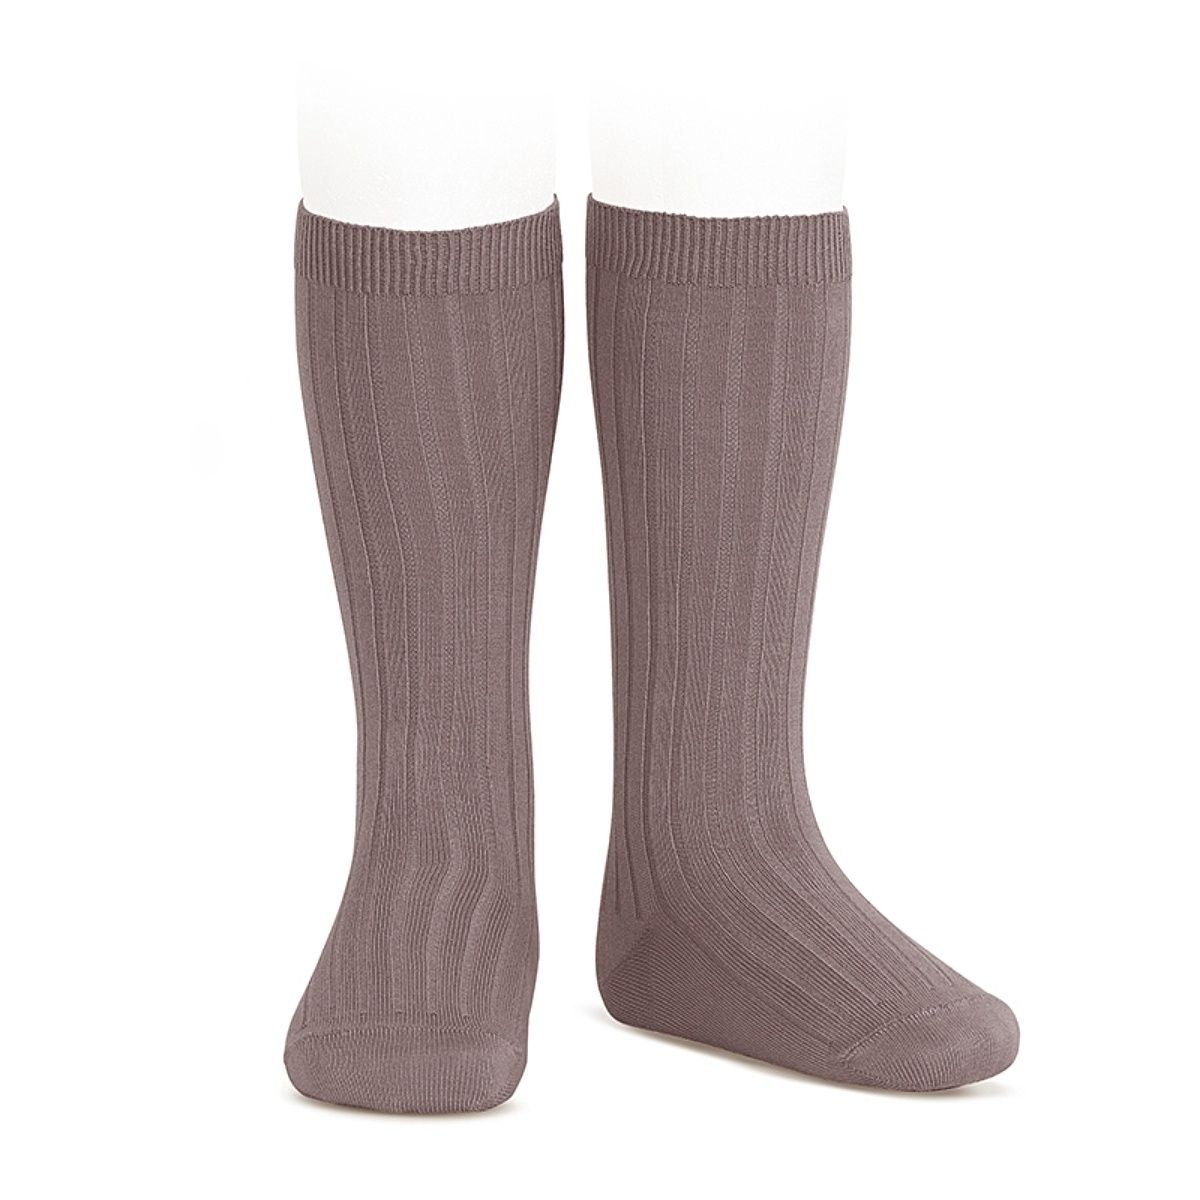 Condor Wide Ribbed Cotton Knee High Socks praline